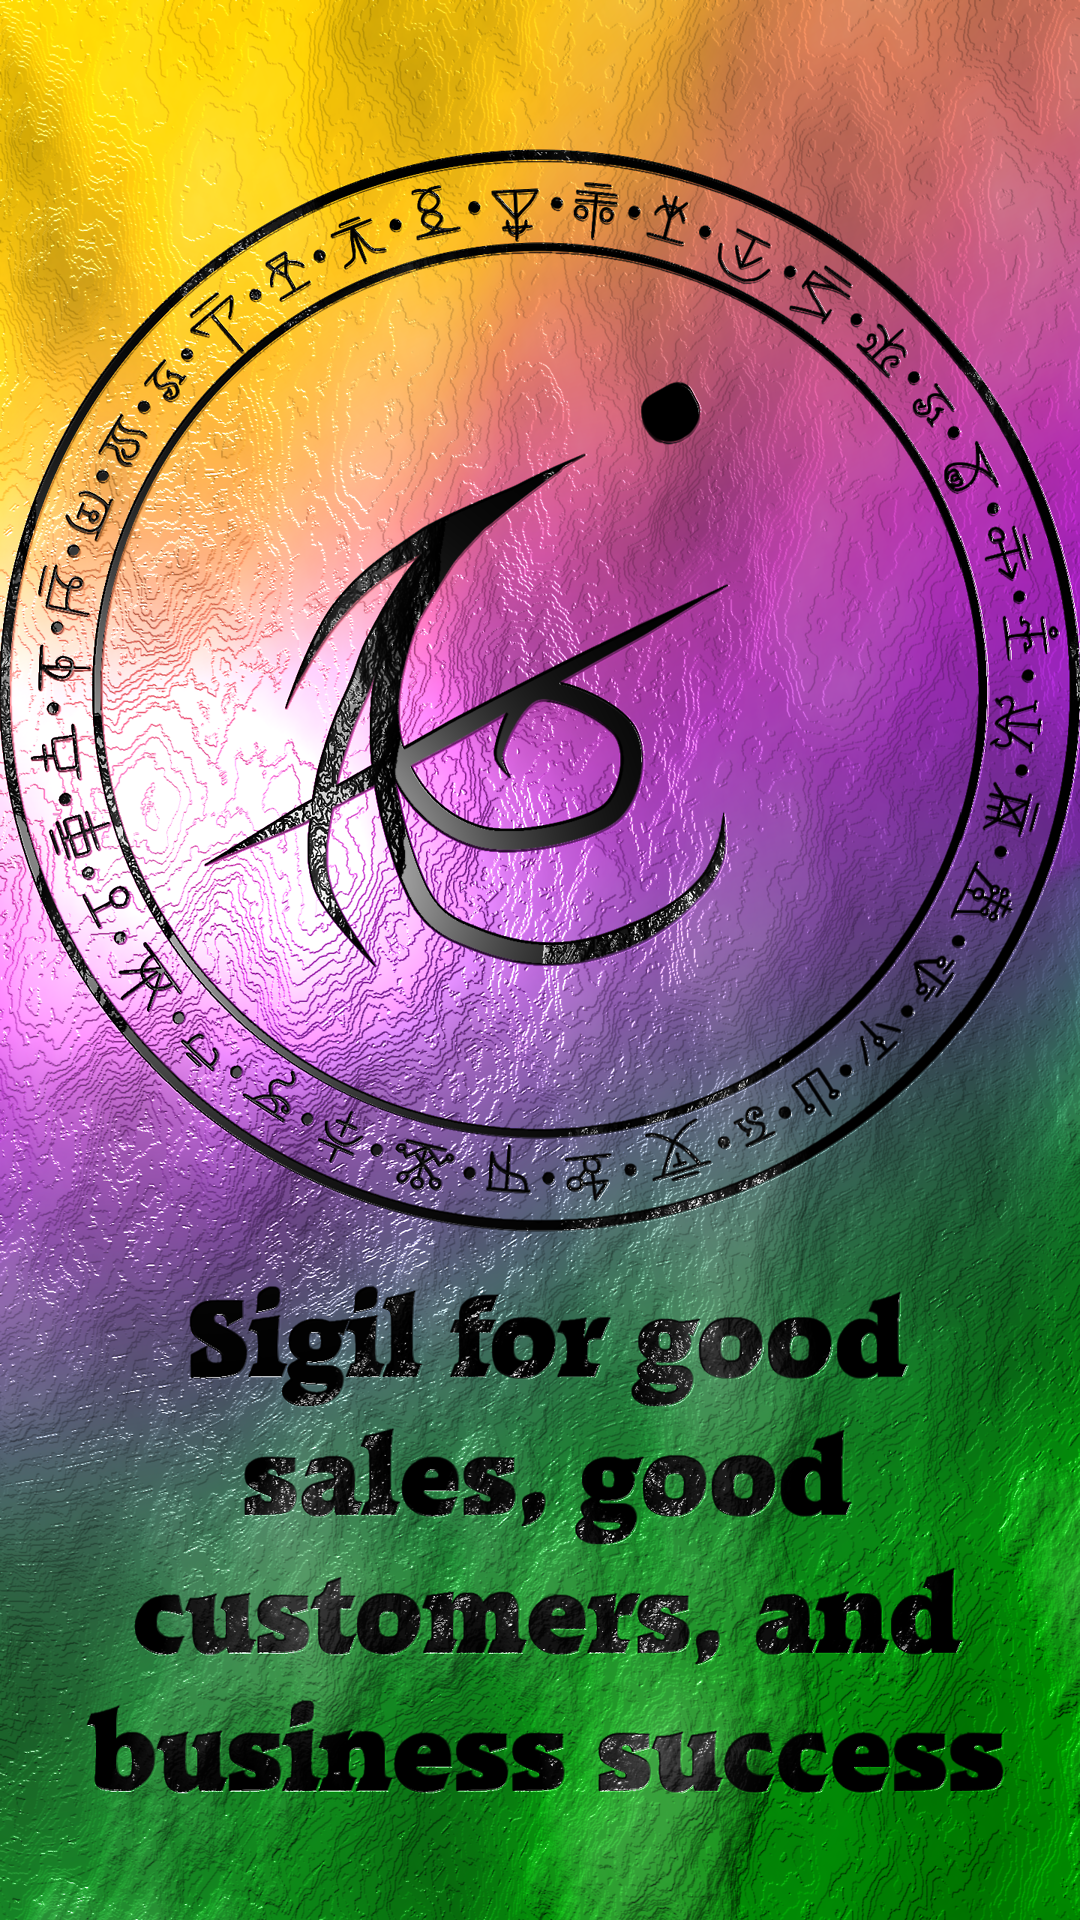 Sigil for good sales, good customers, and business success